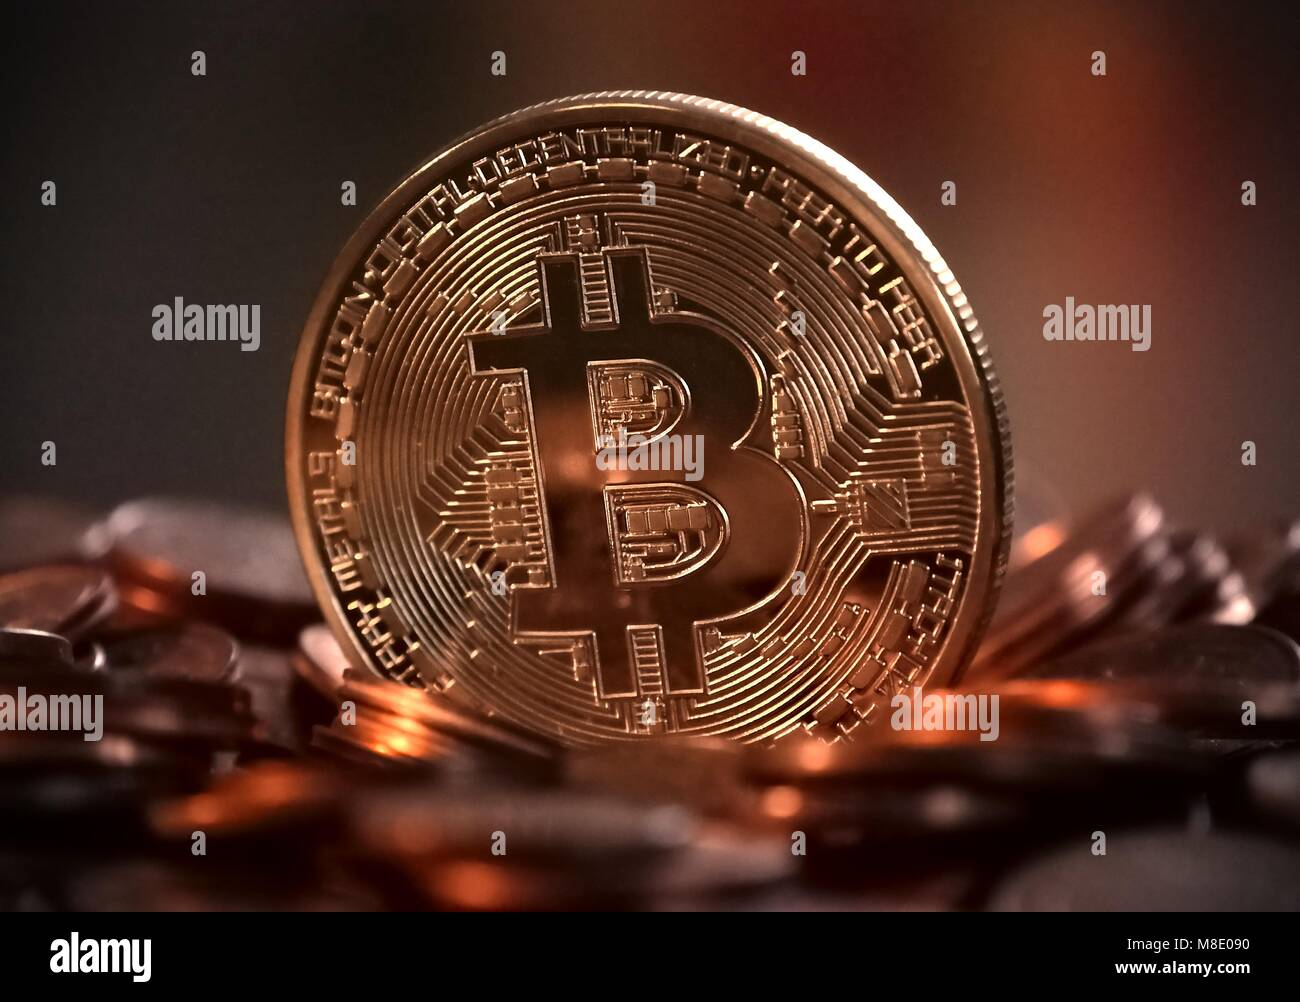 Bitcoin Digital Money Stock Photo